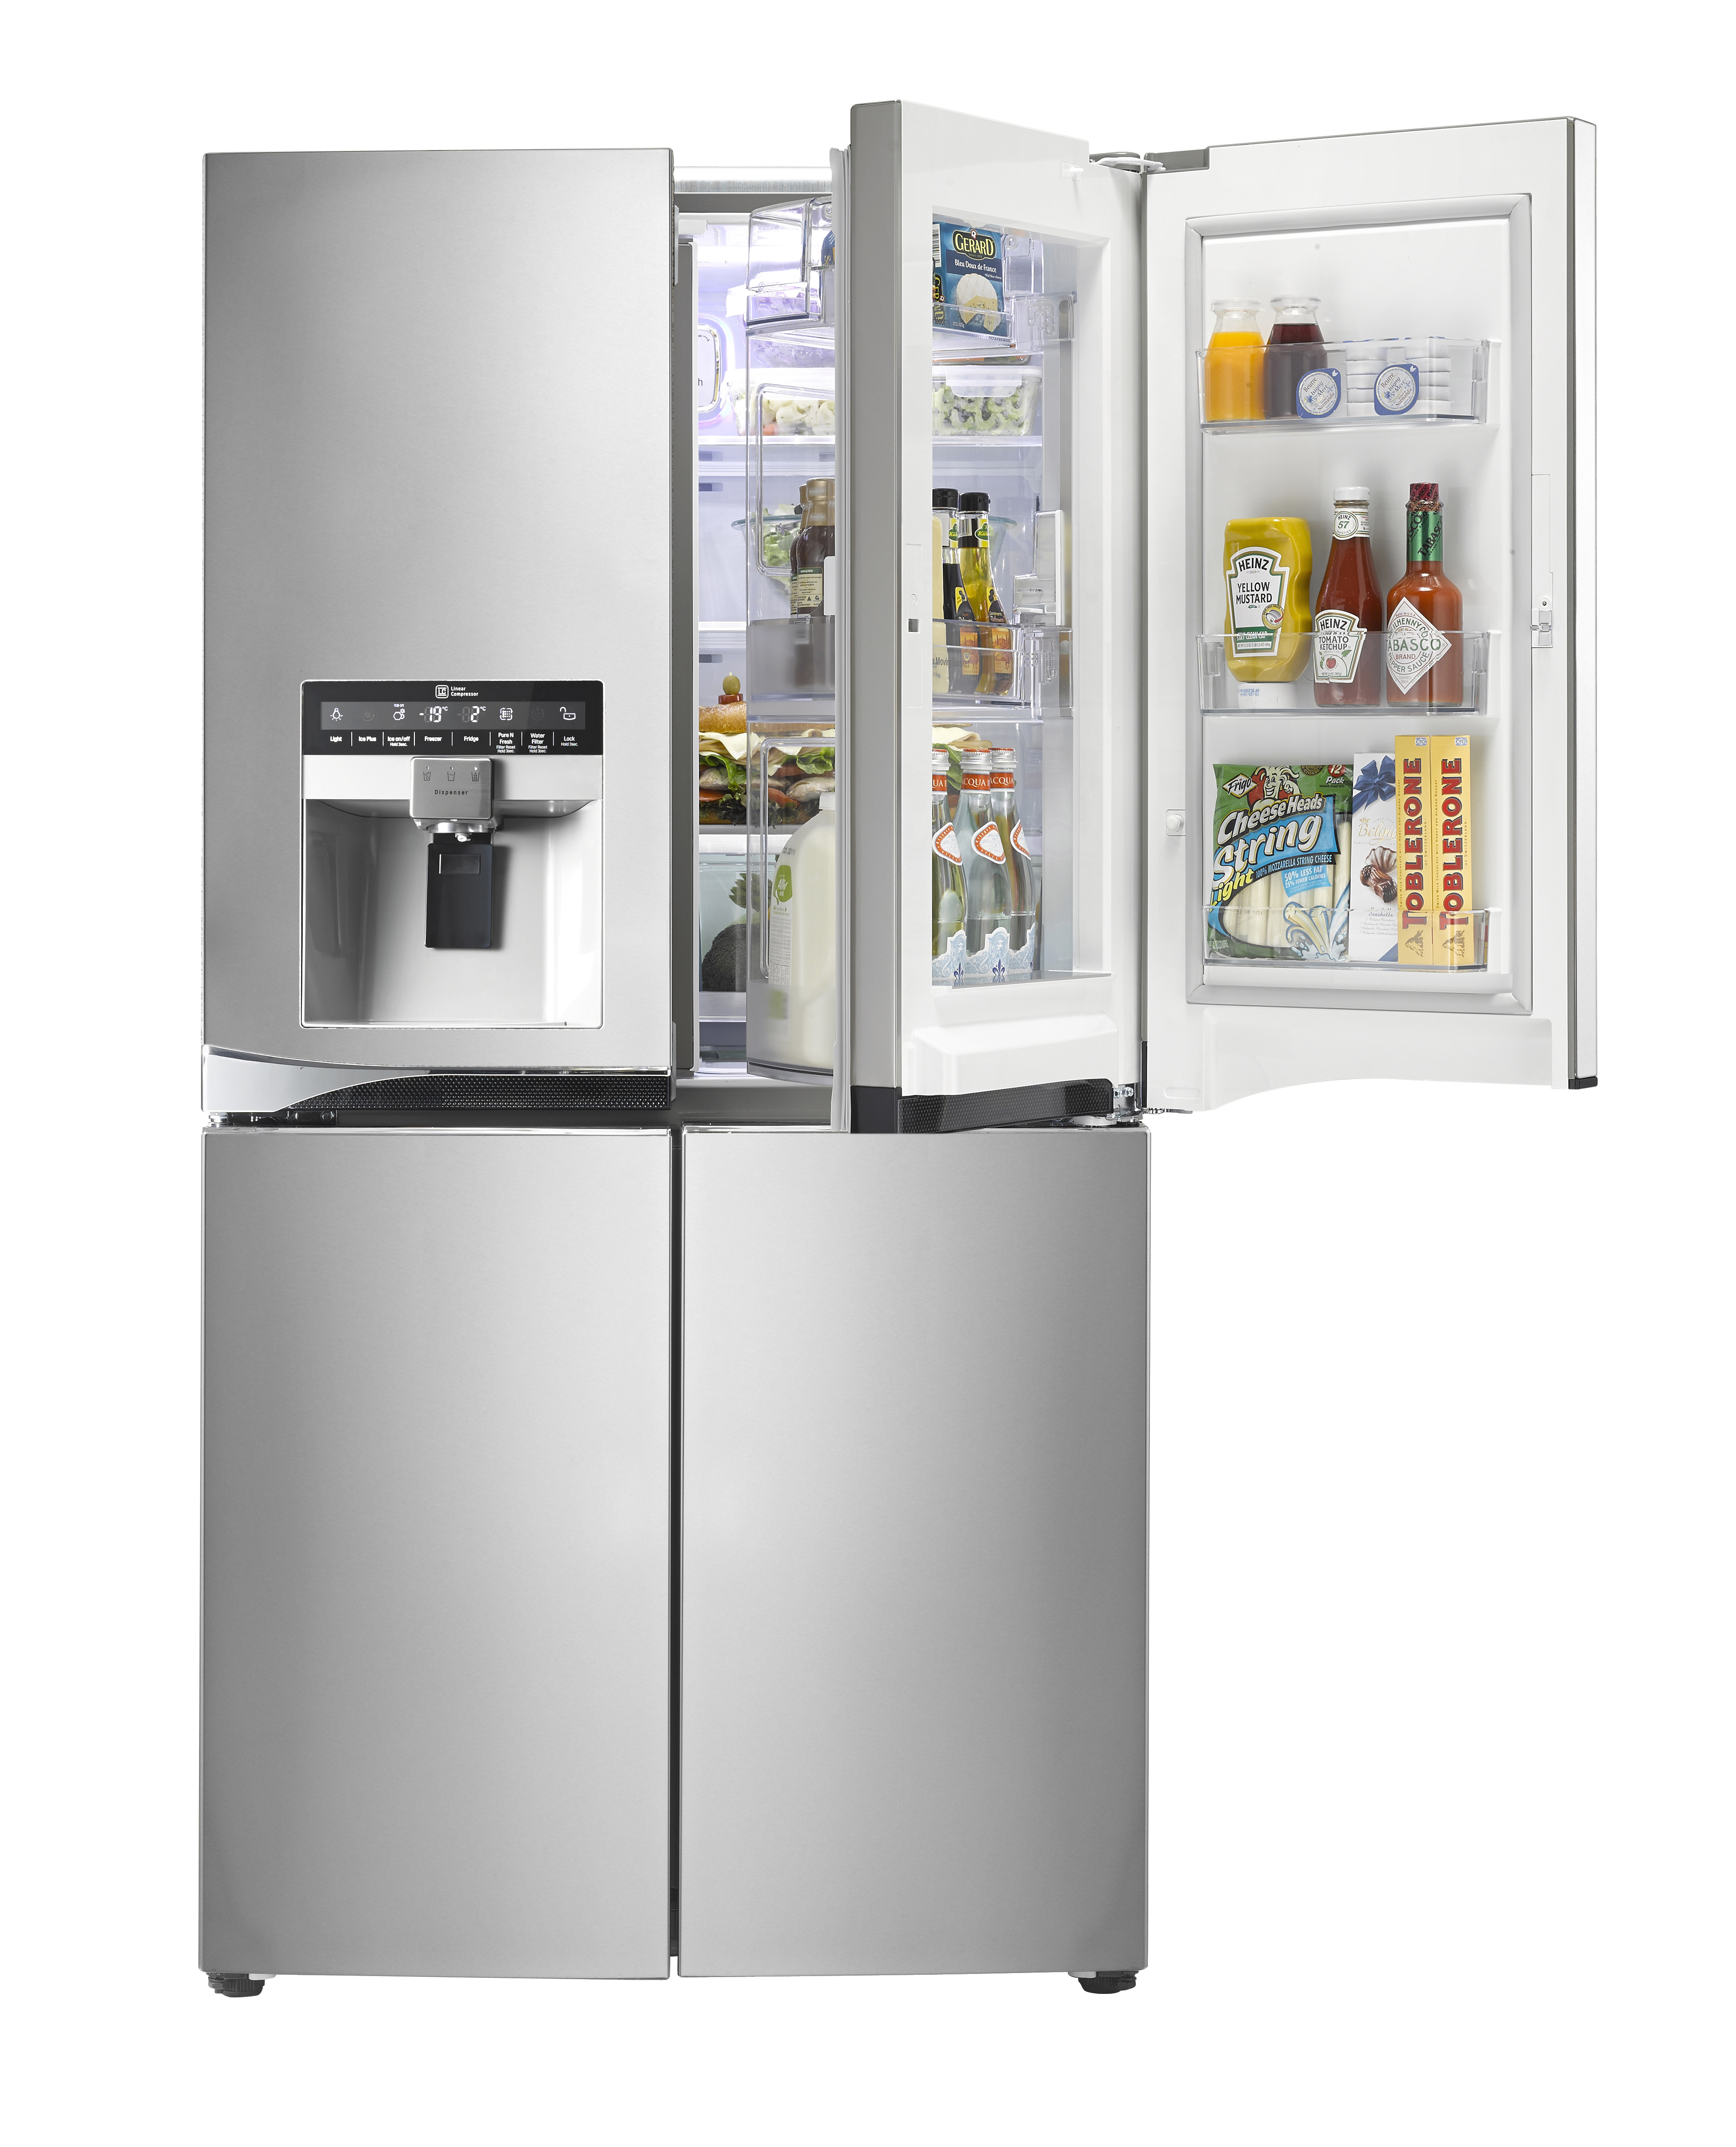 LG Multi-Door refrigerator with its upper-right door including Door-in-Door part open. The refrigerator is filled up with various food such as sauces and snacks.